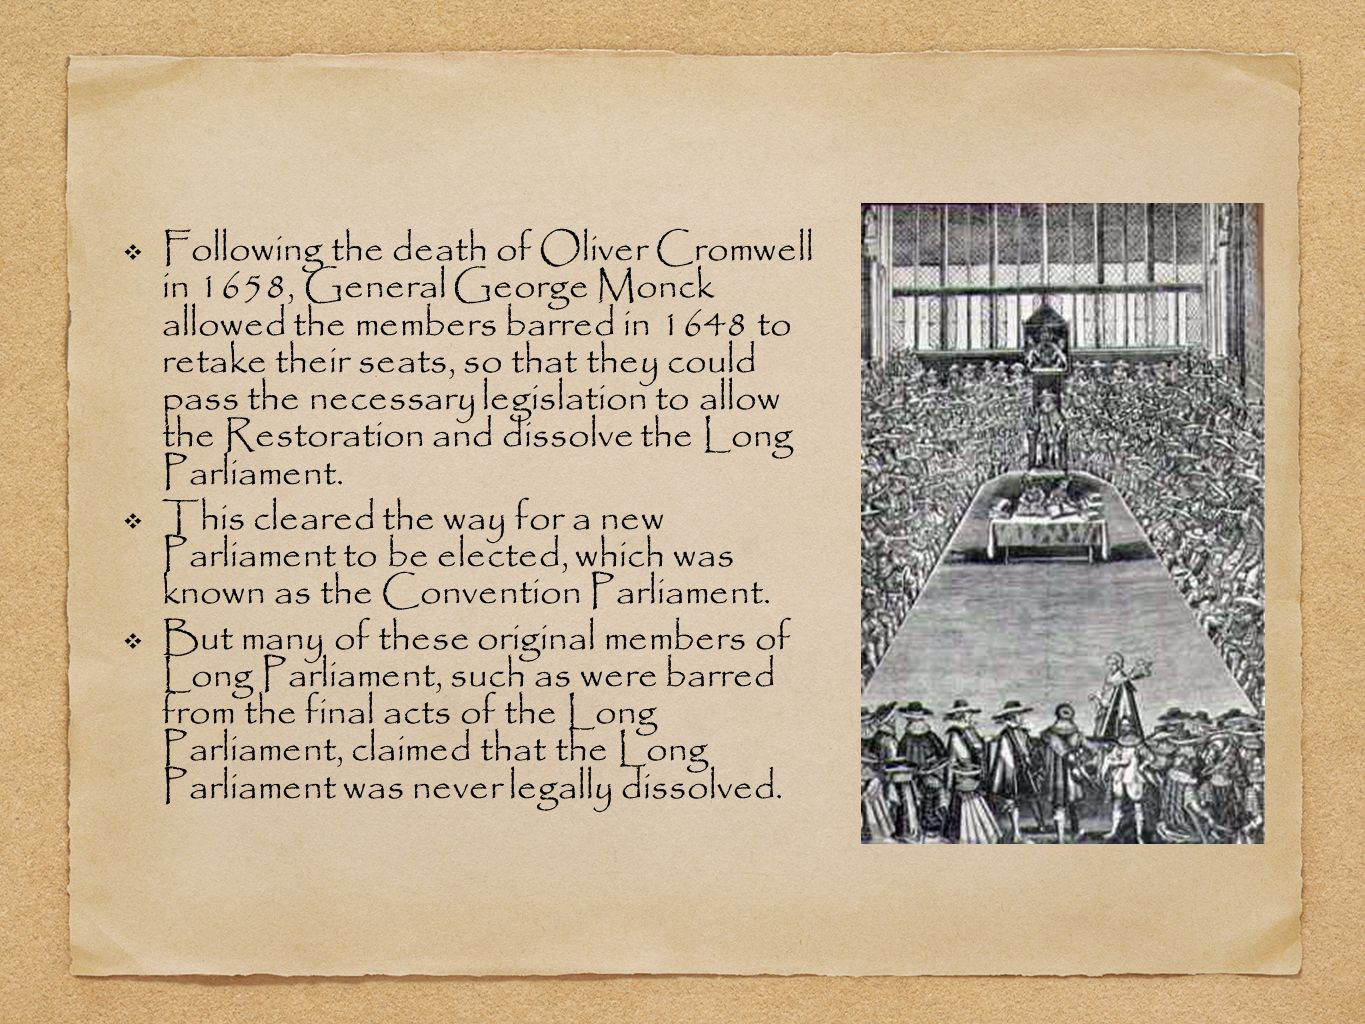 ❖ Following the death of Oliver Cromwell in 1658, General George Monck allowed the members barred in 1648 to retake their seats, so that they could pass the necessary legislation to allow the Restoration and dissolve the Long Parliament.